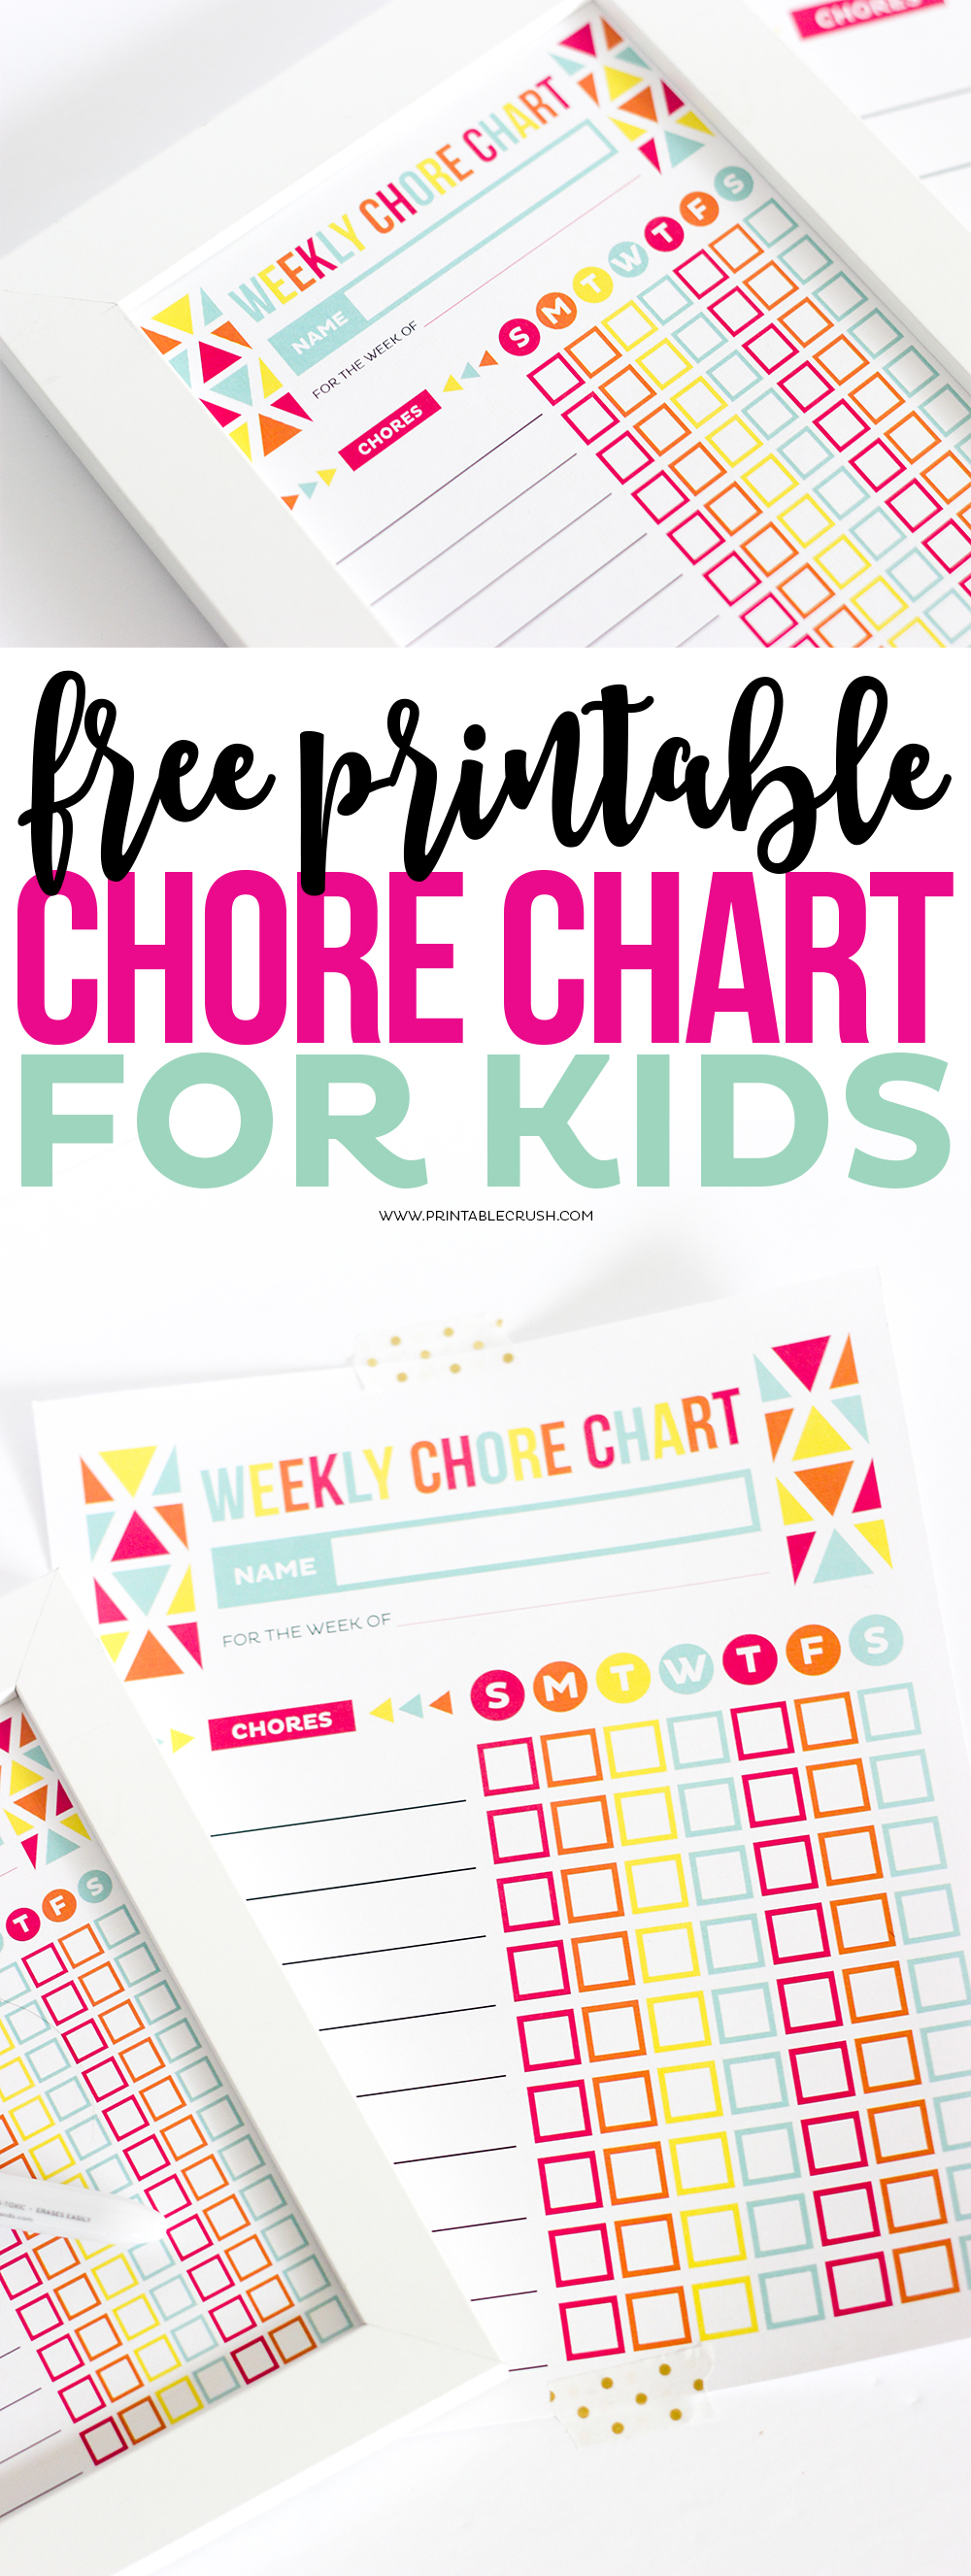 photograph regarding Free Printable Chore Charts for Kids named Chore Charts For Small children - Continue to keep Small children Upon Observe Getting My No cost